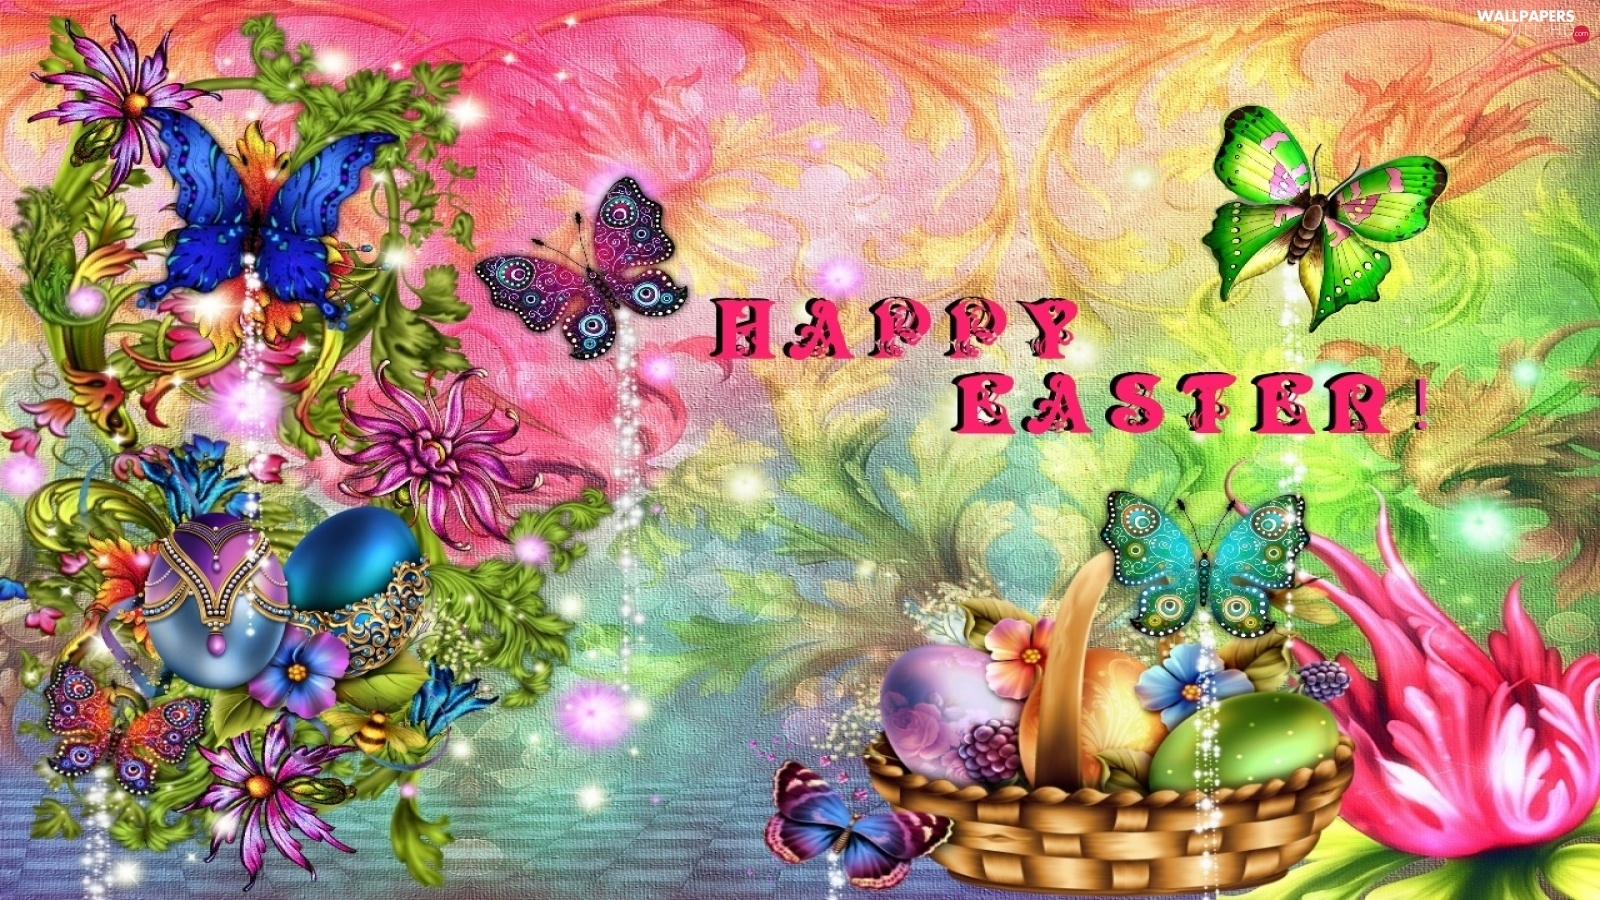 Flowers, color, basket, Easter, butterflies, color, eggs